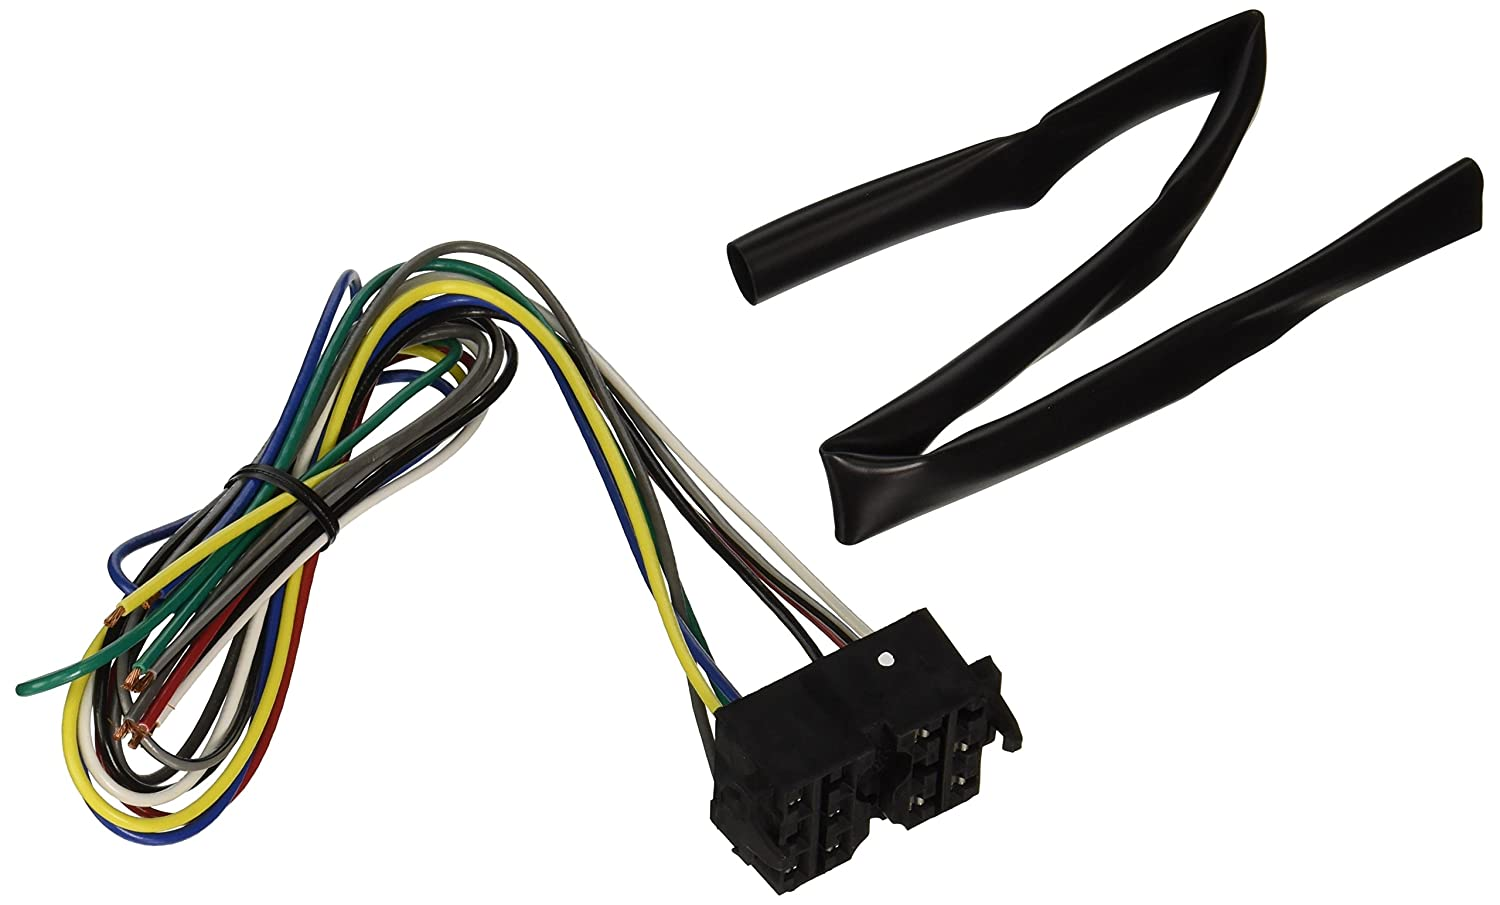 71LYuogv09L._SL1500_ amazon com grote 69680 universal replacement harness (4 to 7 wire grote wire harness at soozxer.org